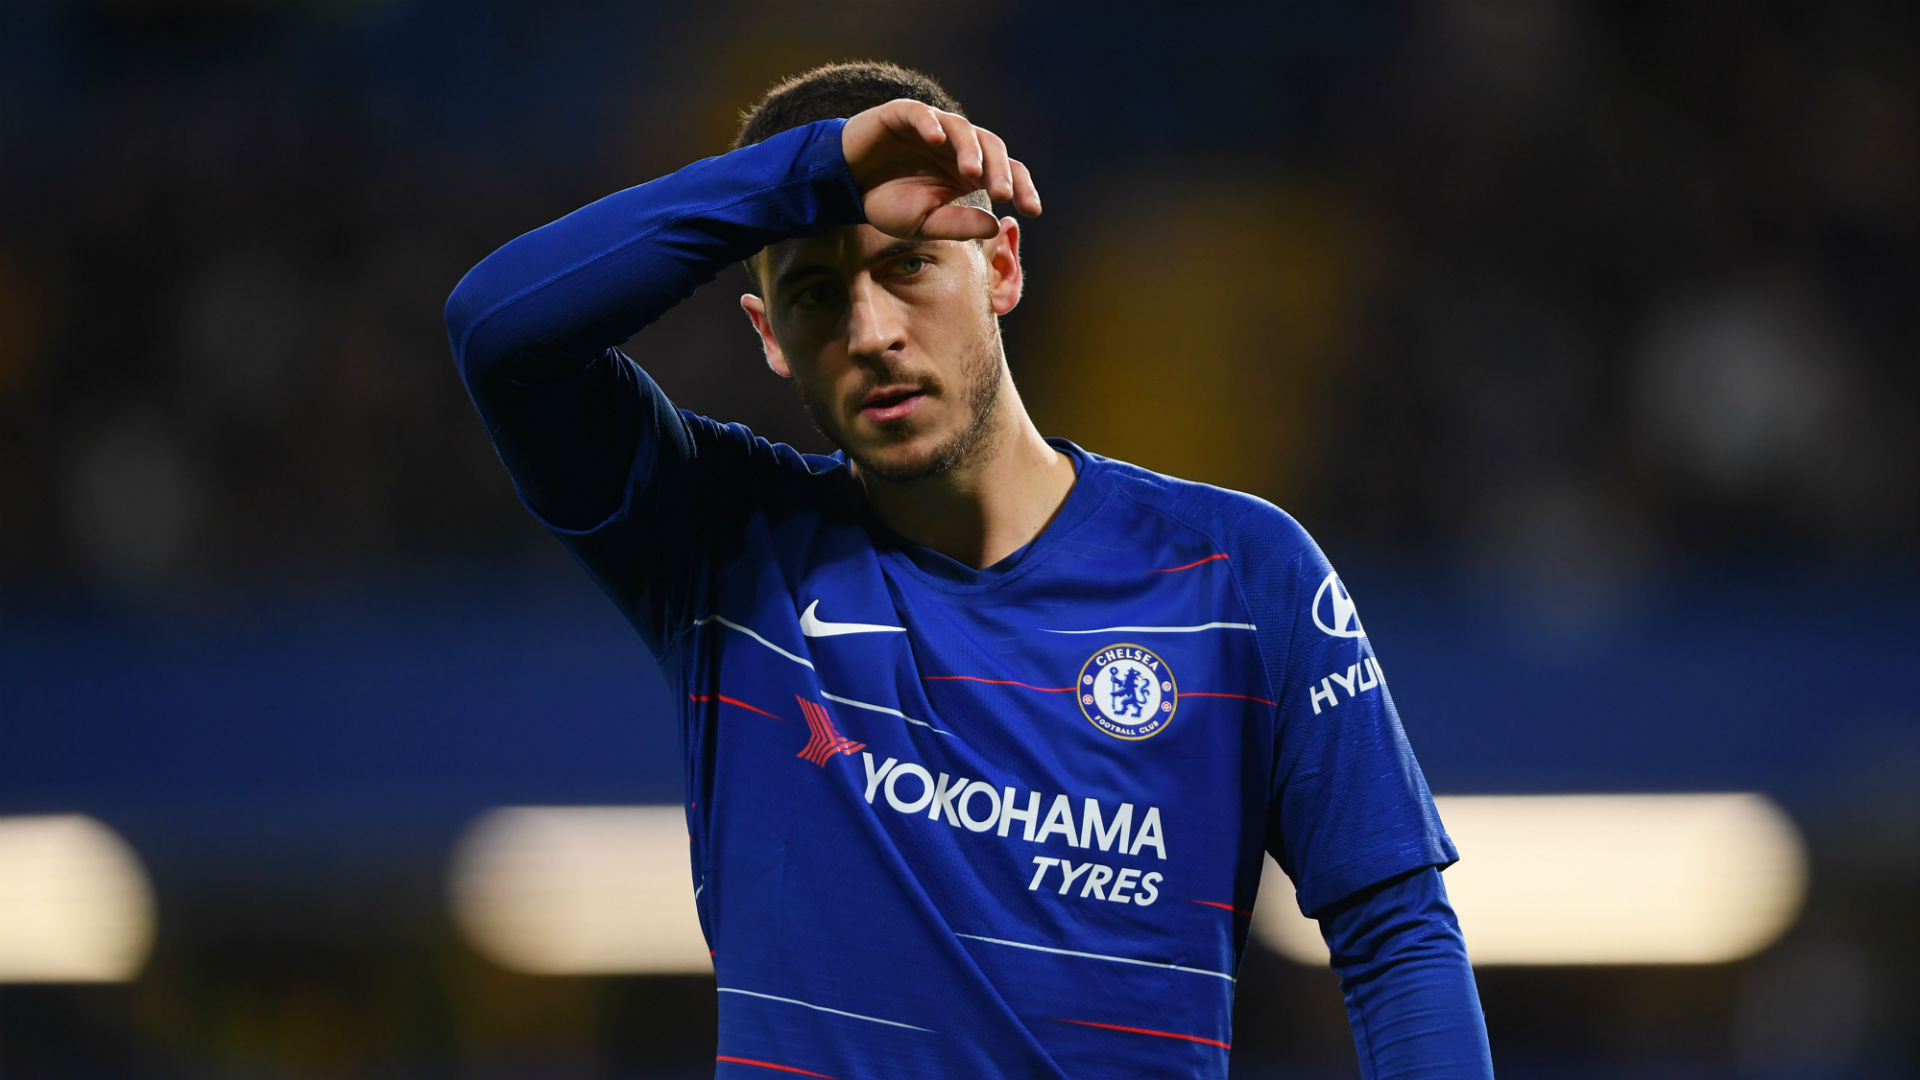 Hazard should leave Chelsea for Real Madrid 'to become stronger'